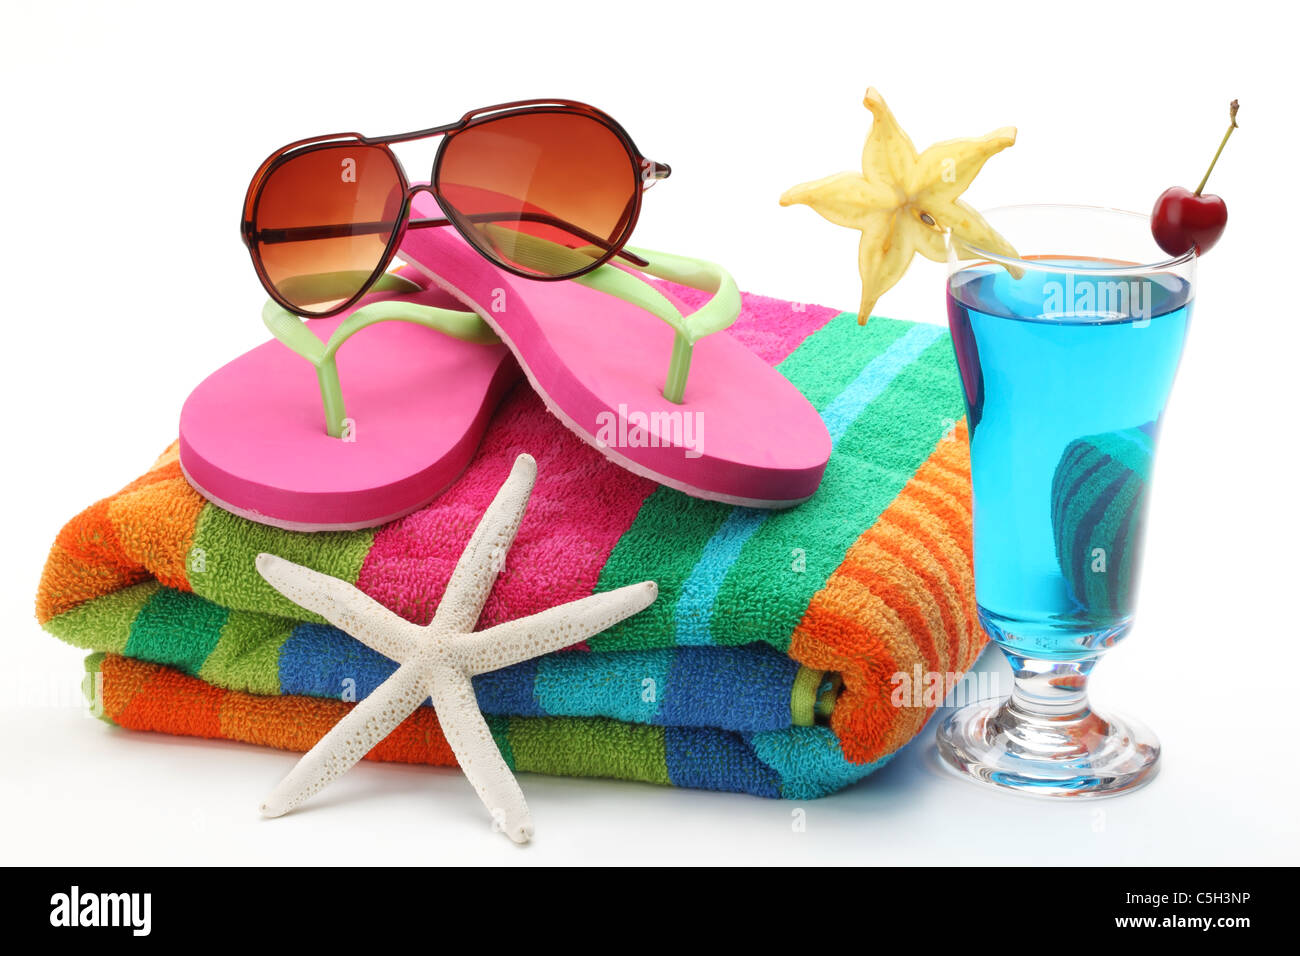 Beach items with towel,flip flops, sunglasses and a glass of cocktail.Isolated on white background. - Stock Image